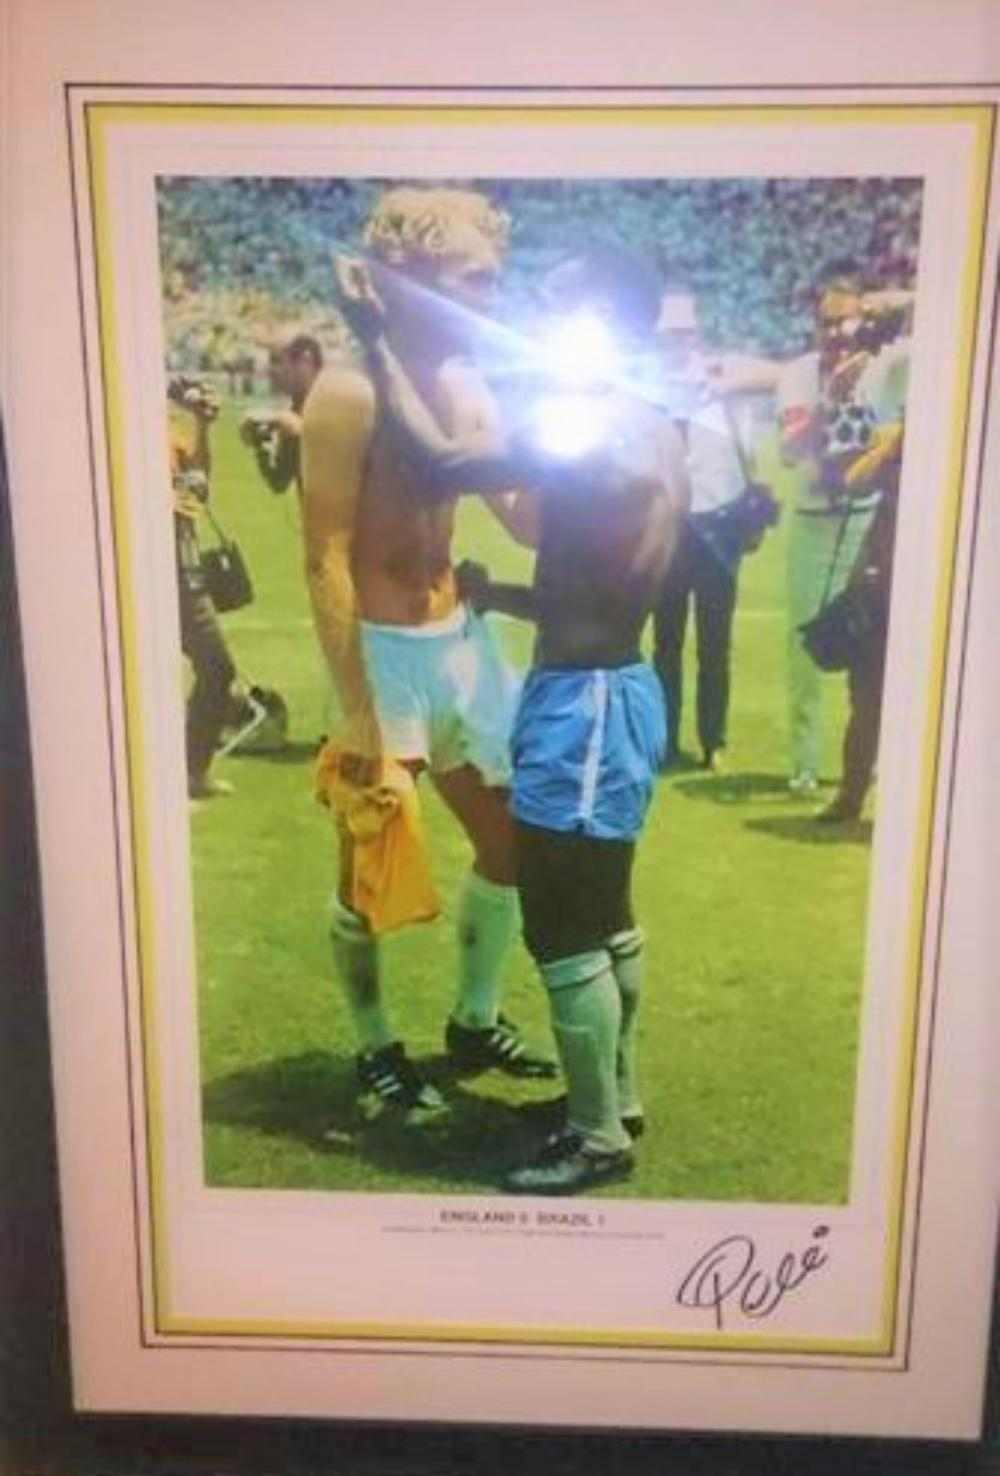 "Lot 20 - Signed Pele and Bobby Moore framed picture - SIGNED BY PELE ONLY.  Robert Frederick Chelsea """"Bobby"""" Moore OBE (12 April 1941 and 24 February 1993) was an English professional footballer. He captained West Ham United for more than ten years"